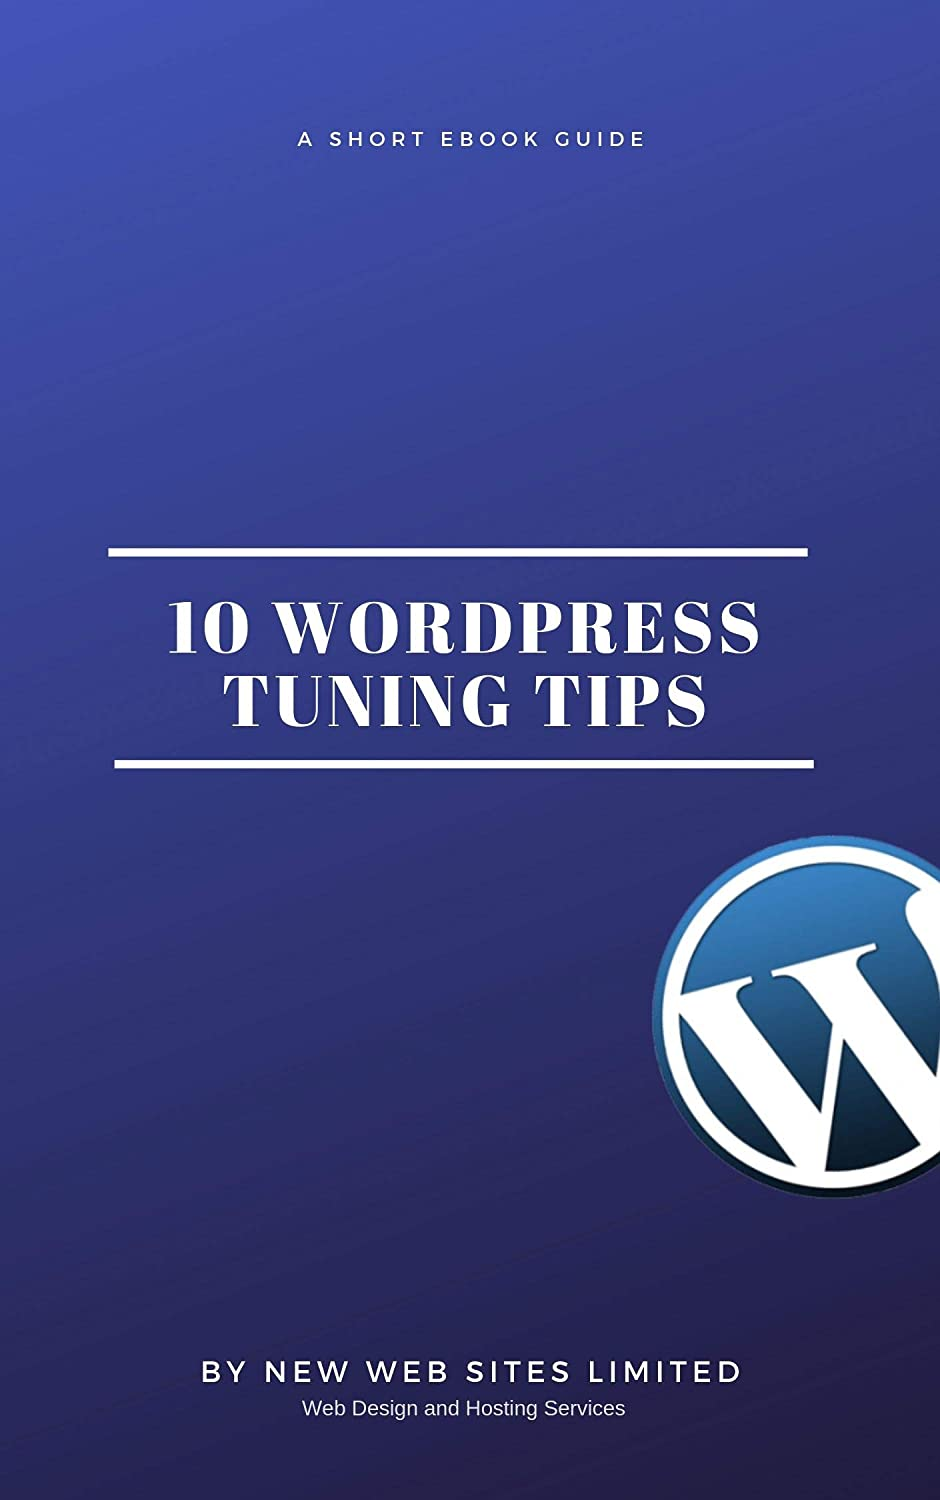 10 WordPress Tuning Tips: Ten easy tips to improve the ...